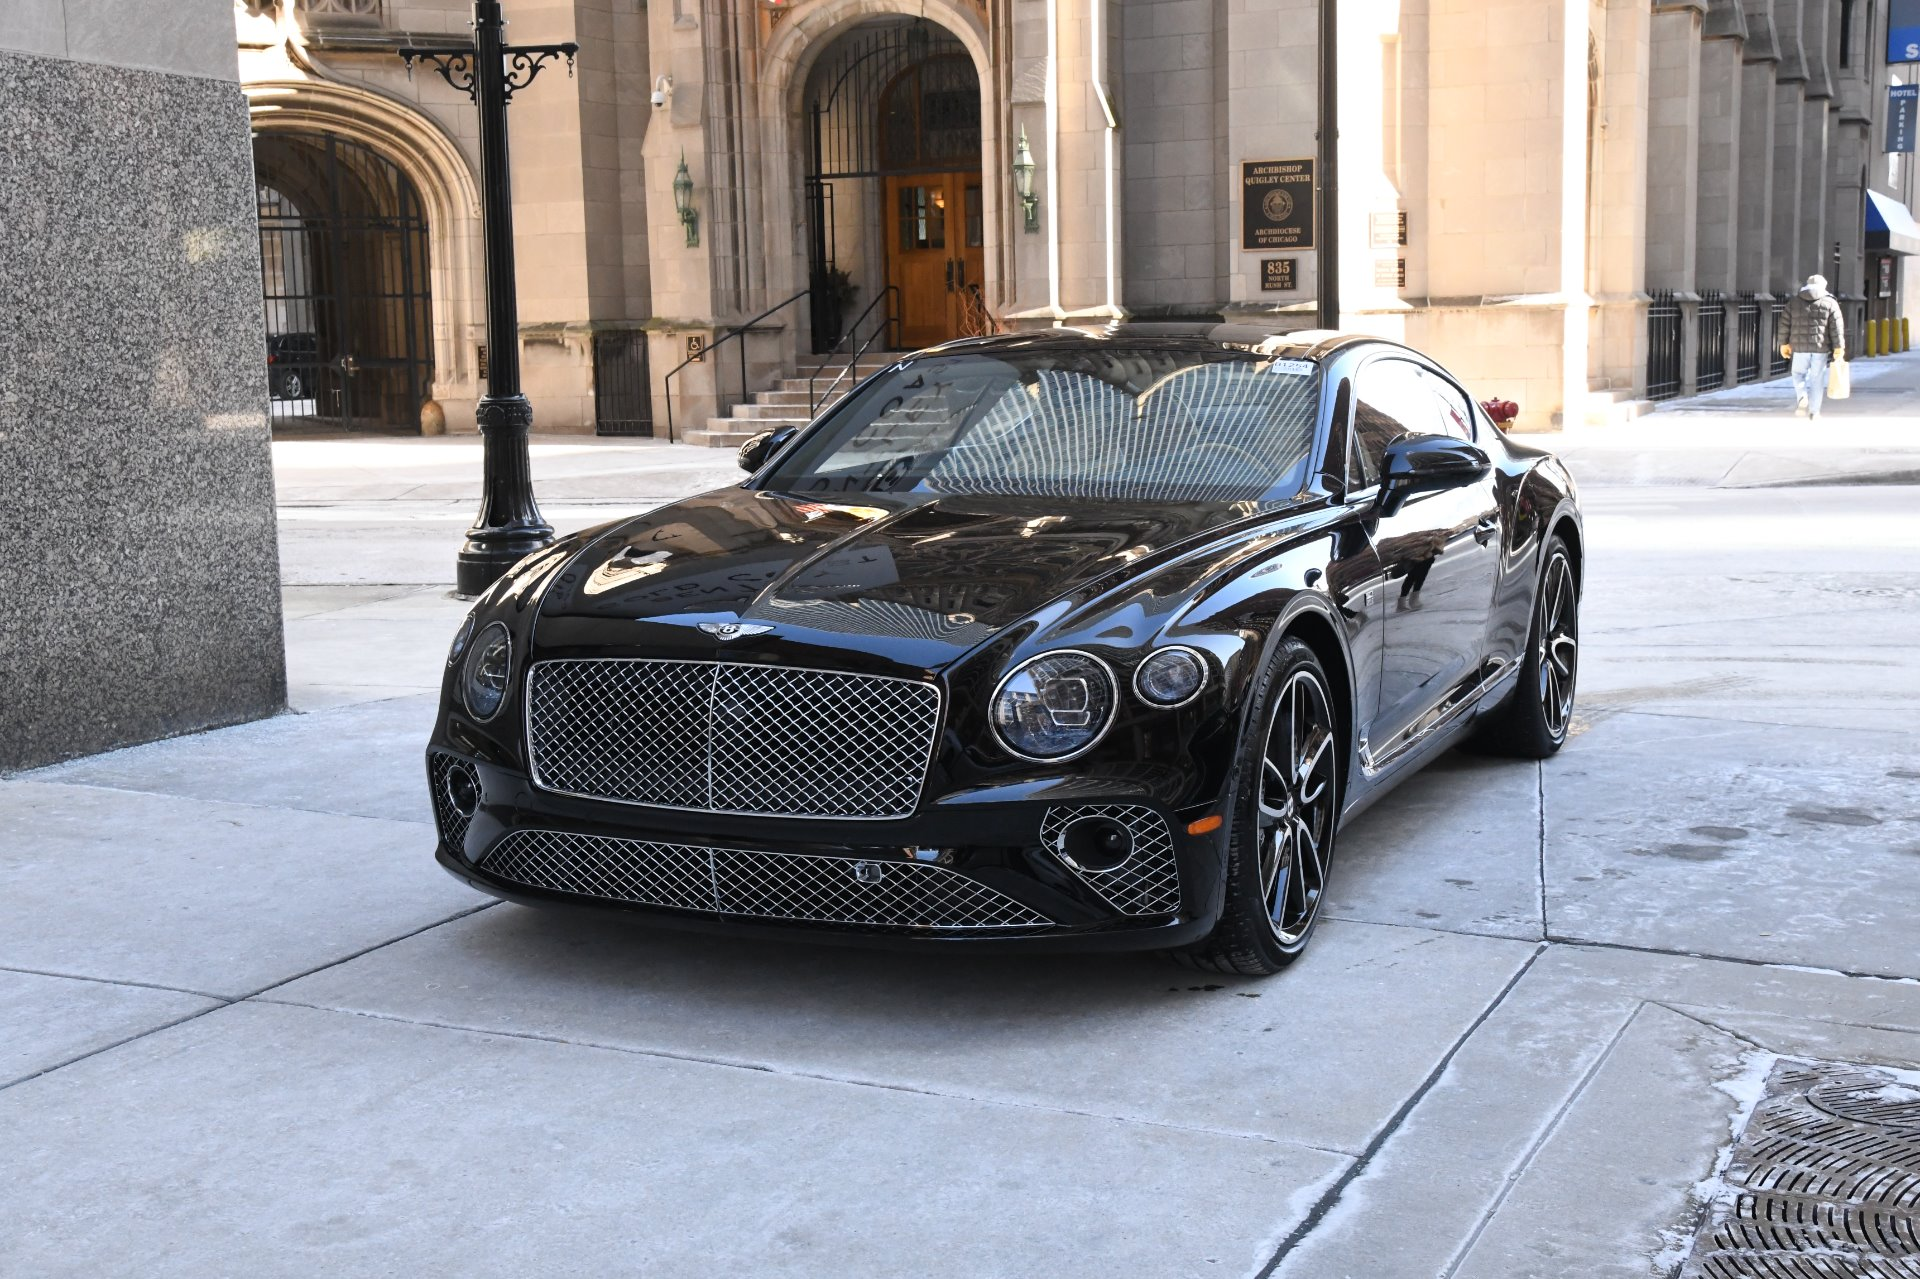 New 2020 Bentley Continental GT V8 GT V8 1st Edition | Chicago, IL